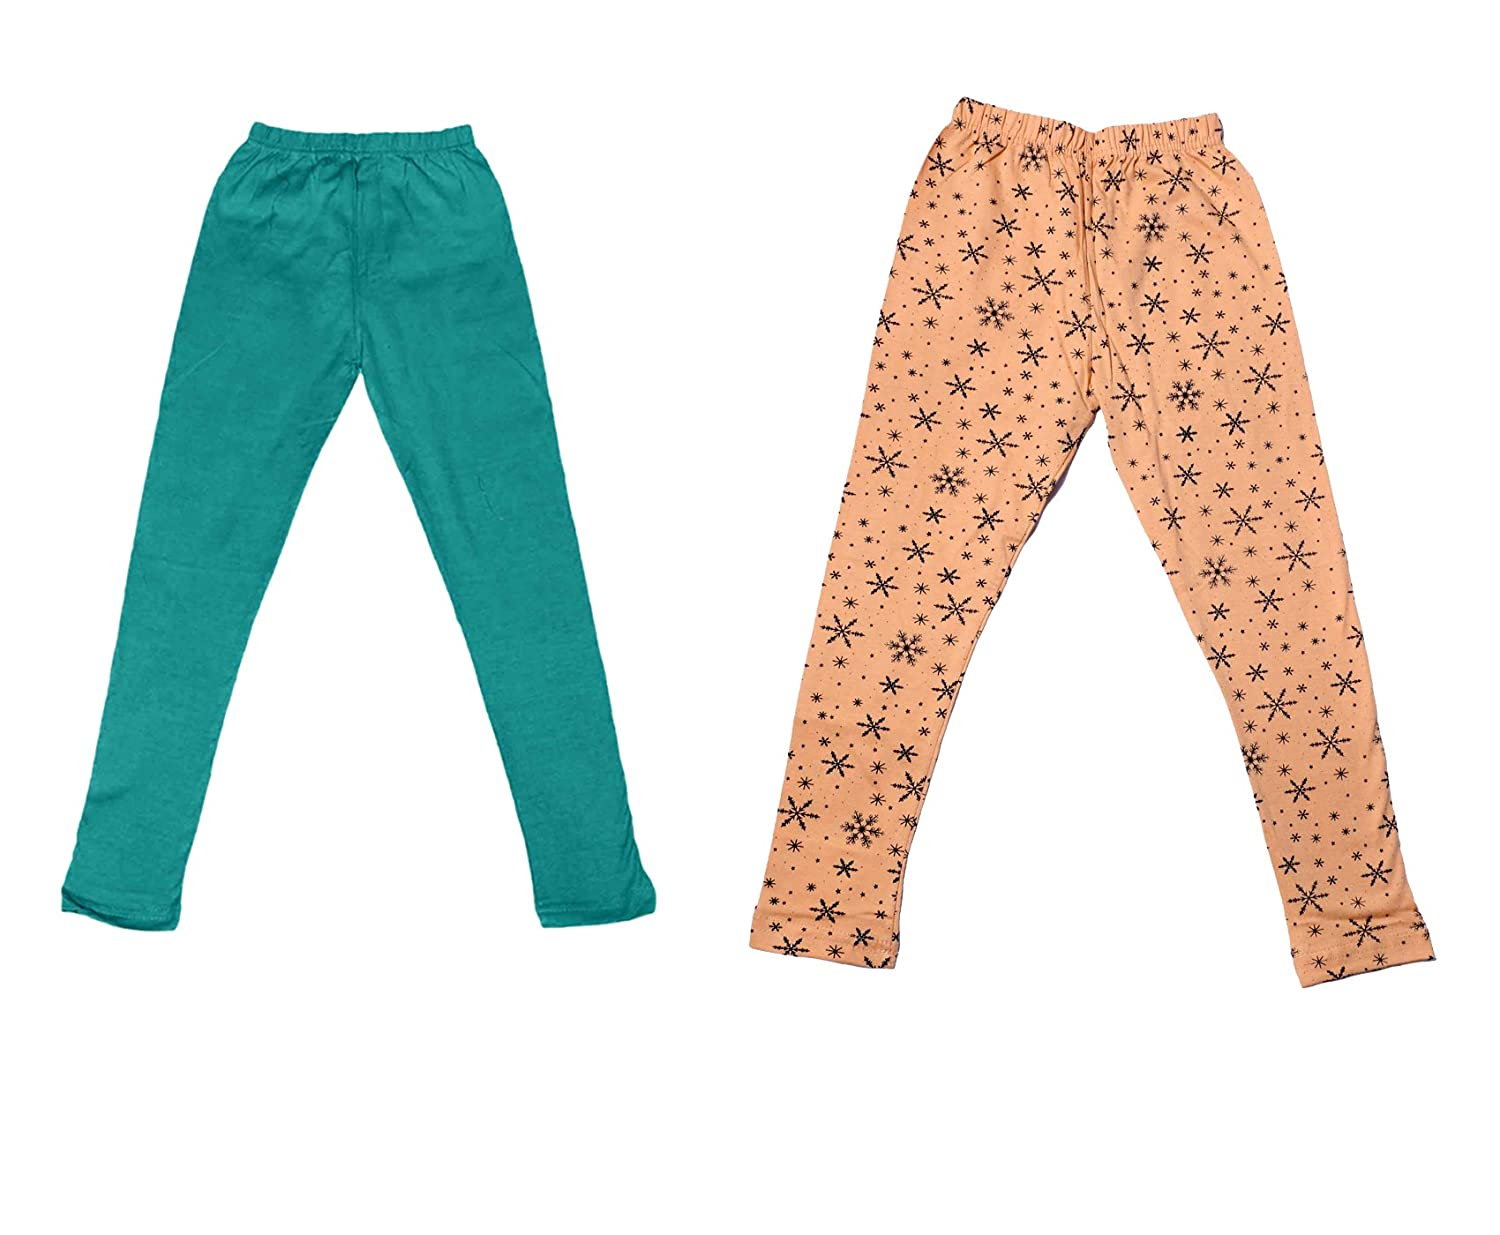 Indistar Girls 1 Cotton Solid Legging Pants Pack Of 2 and 1 Cotton Printed Legging Pants /_Multicolor/_Size-11-12 Years/_7141519-IW-P2-34